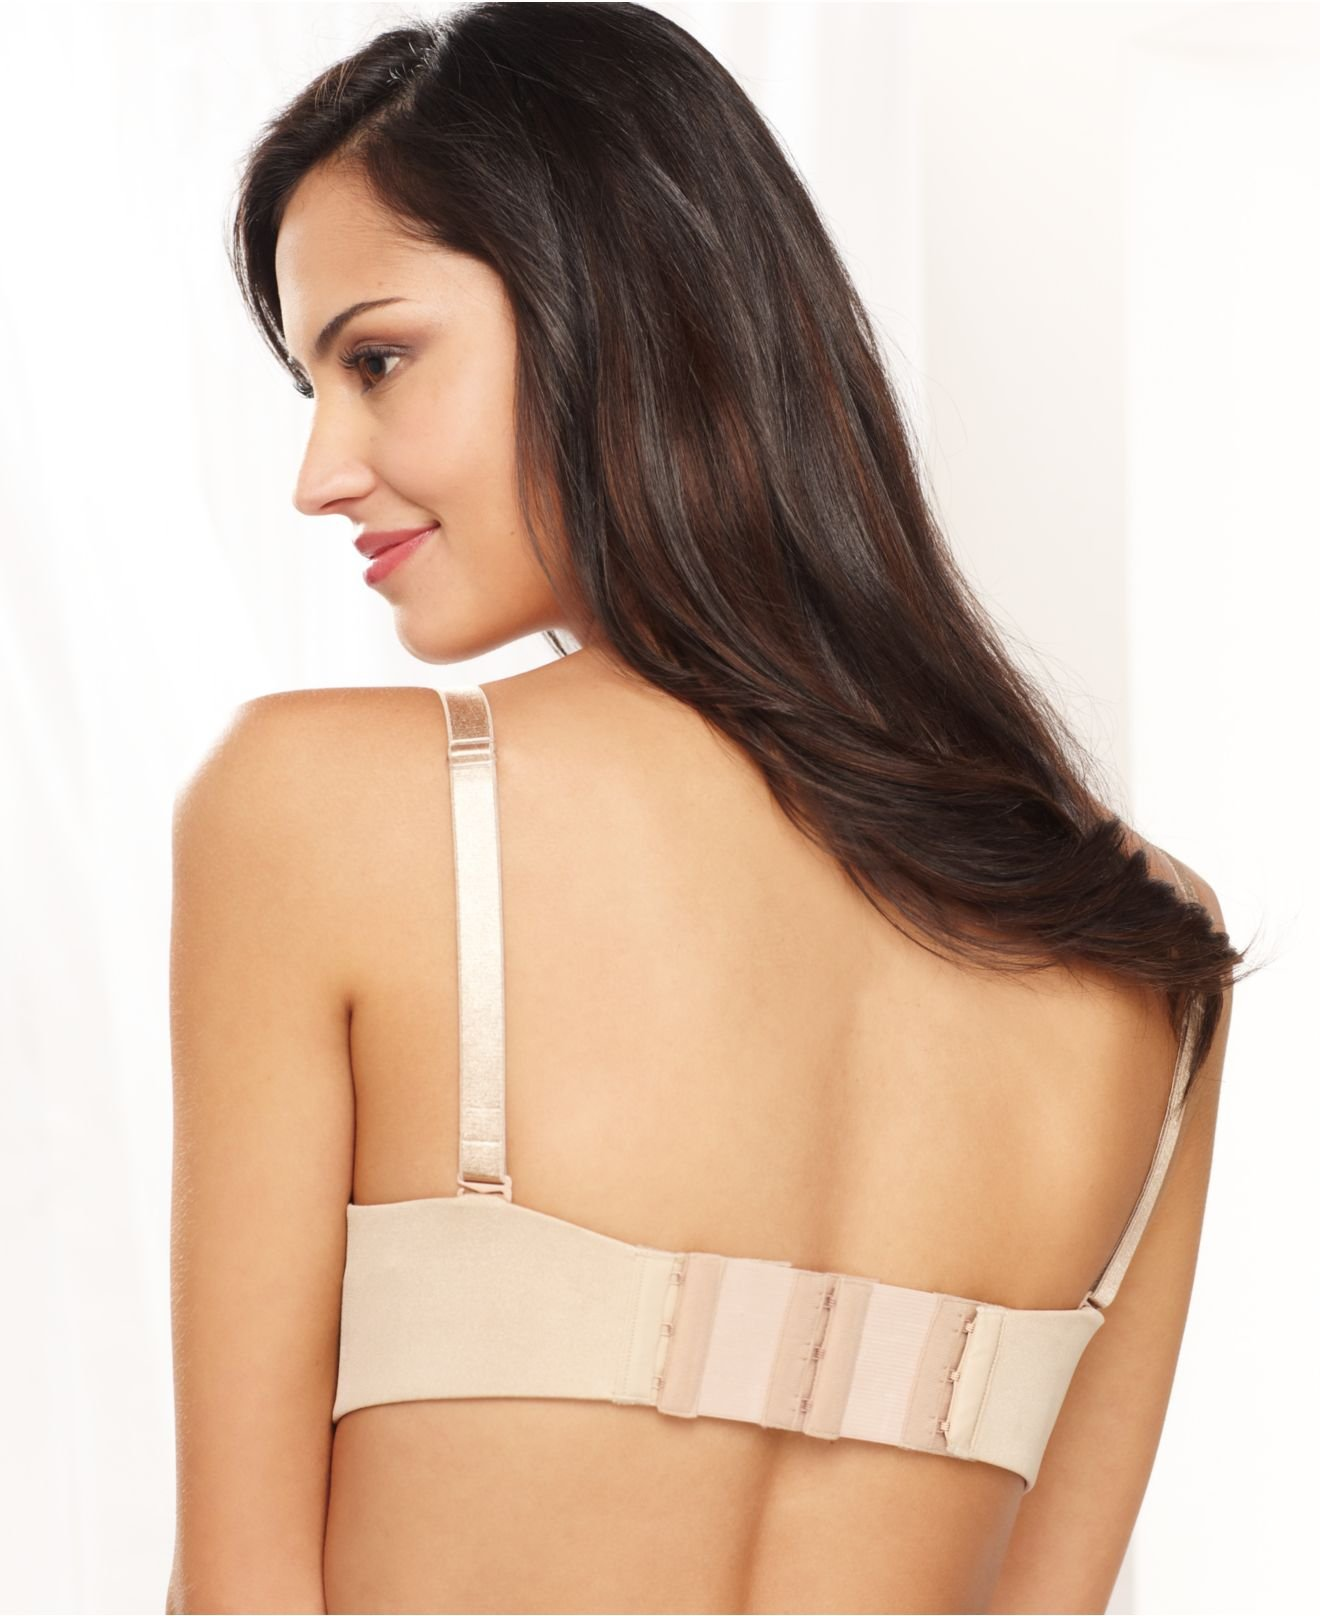 Bra strap extenders are ideal for bras that shrink in laundering and in between sizes. Bra back extenders are made of washable cotton rayon and elastic. Available in 2, 3 or 4 hook bra extenders.